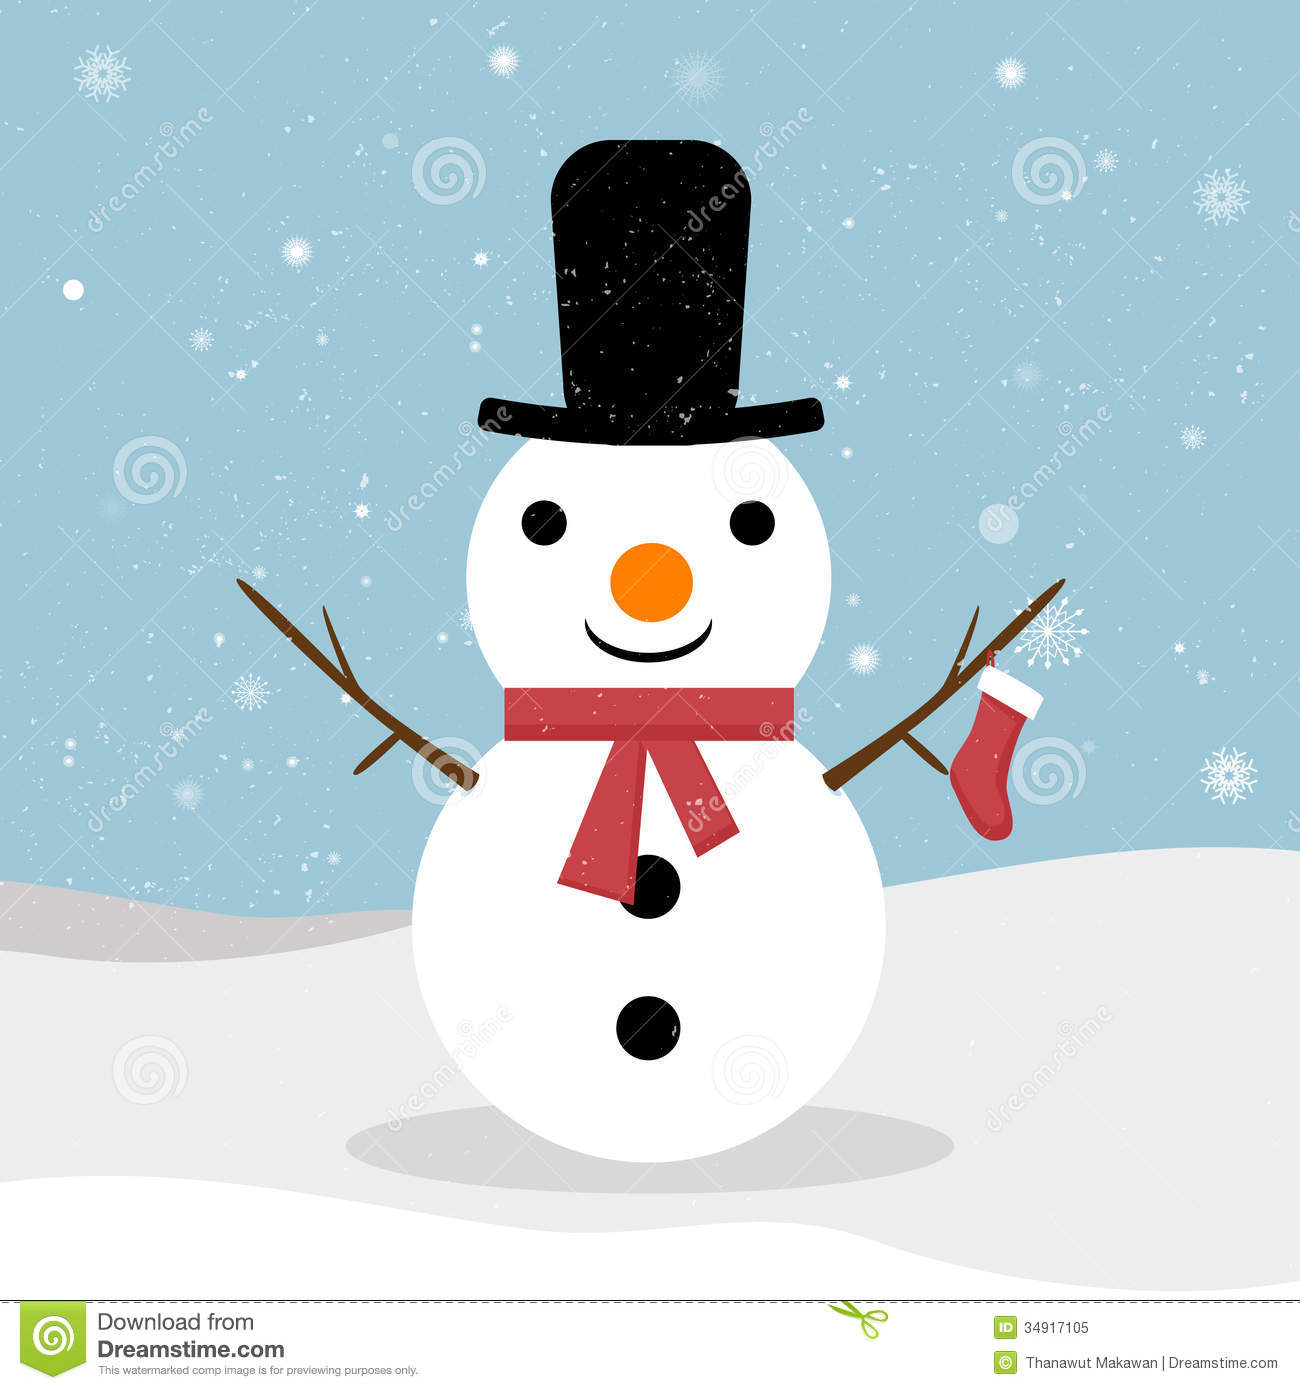 snowman royalty free stock photo image 34917105